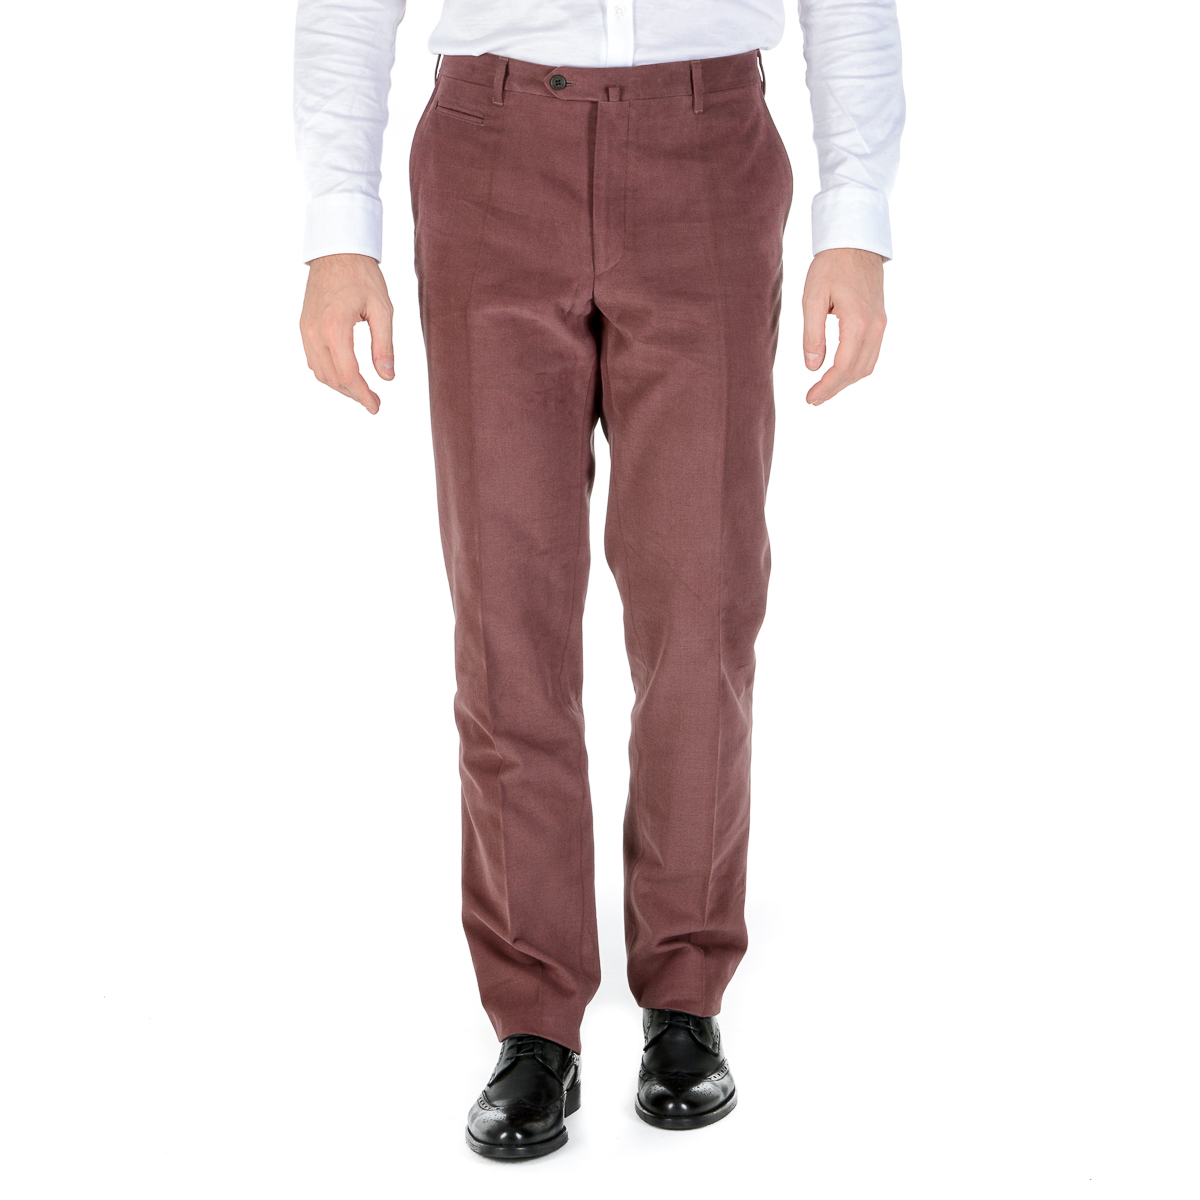 Primary image for Corneliani Mens Pants Bordeaux